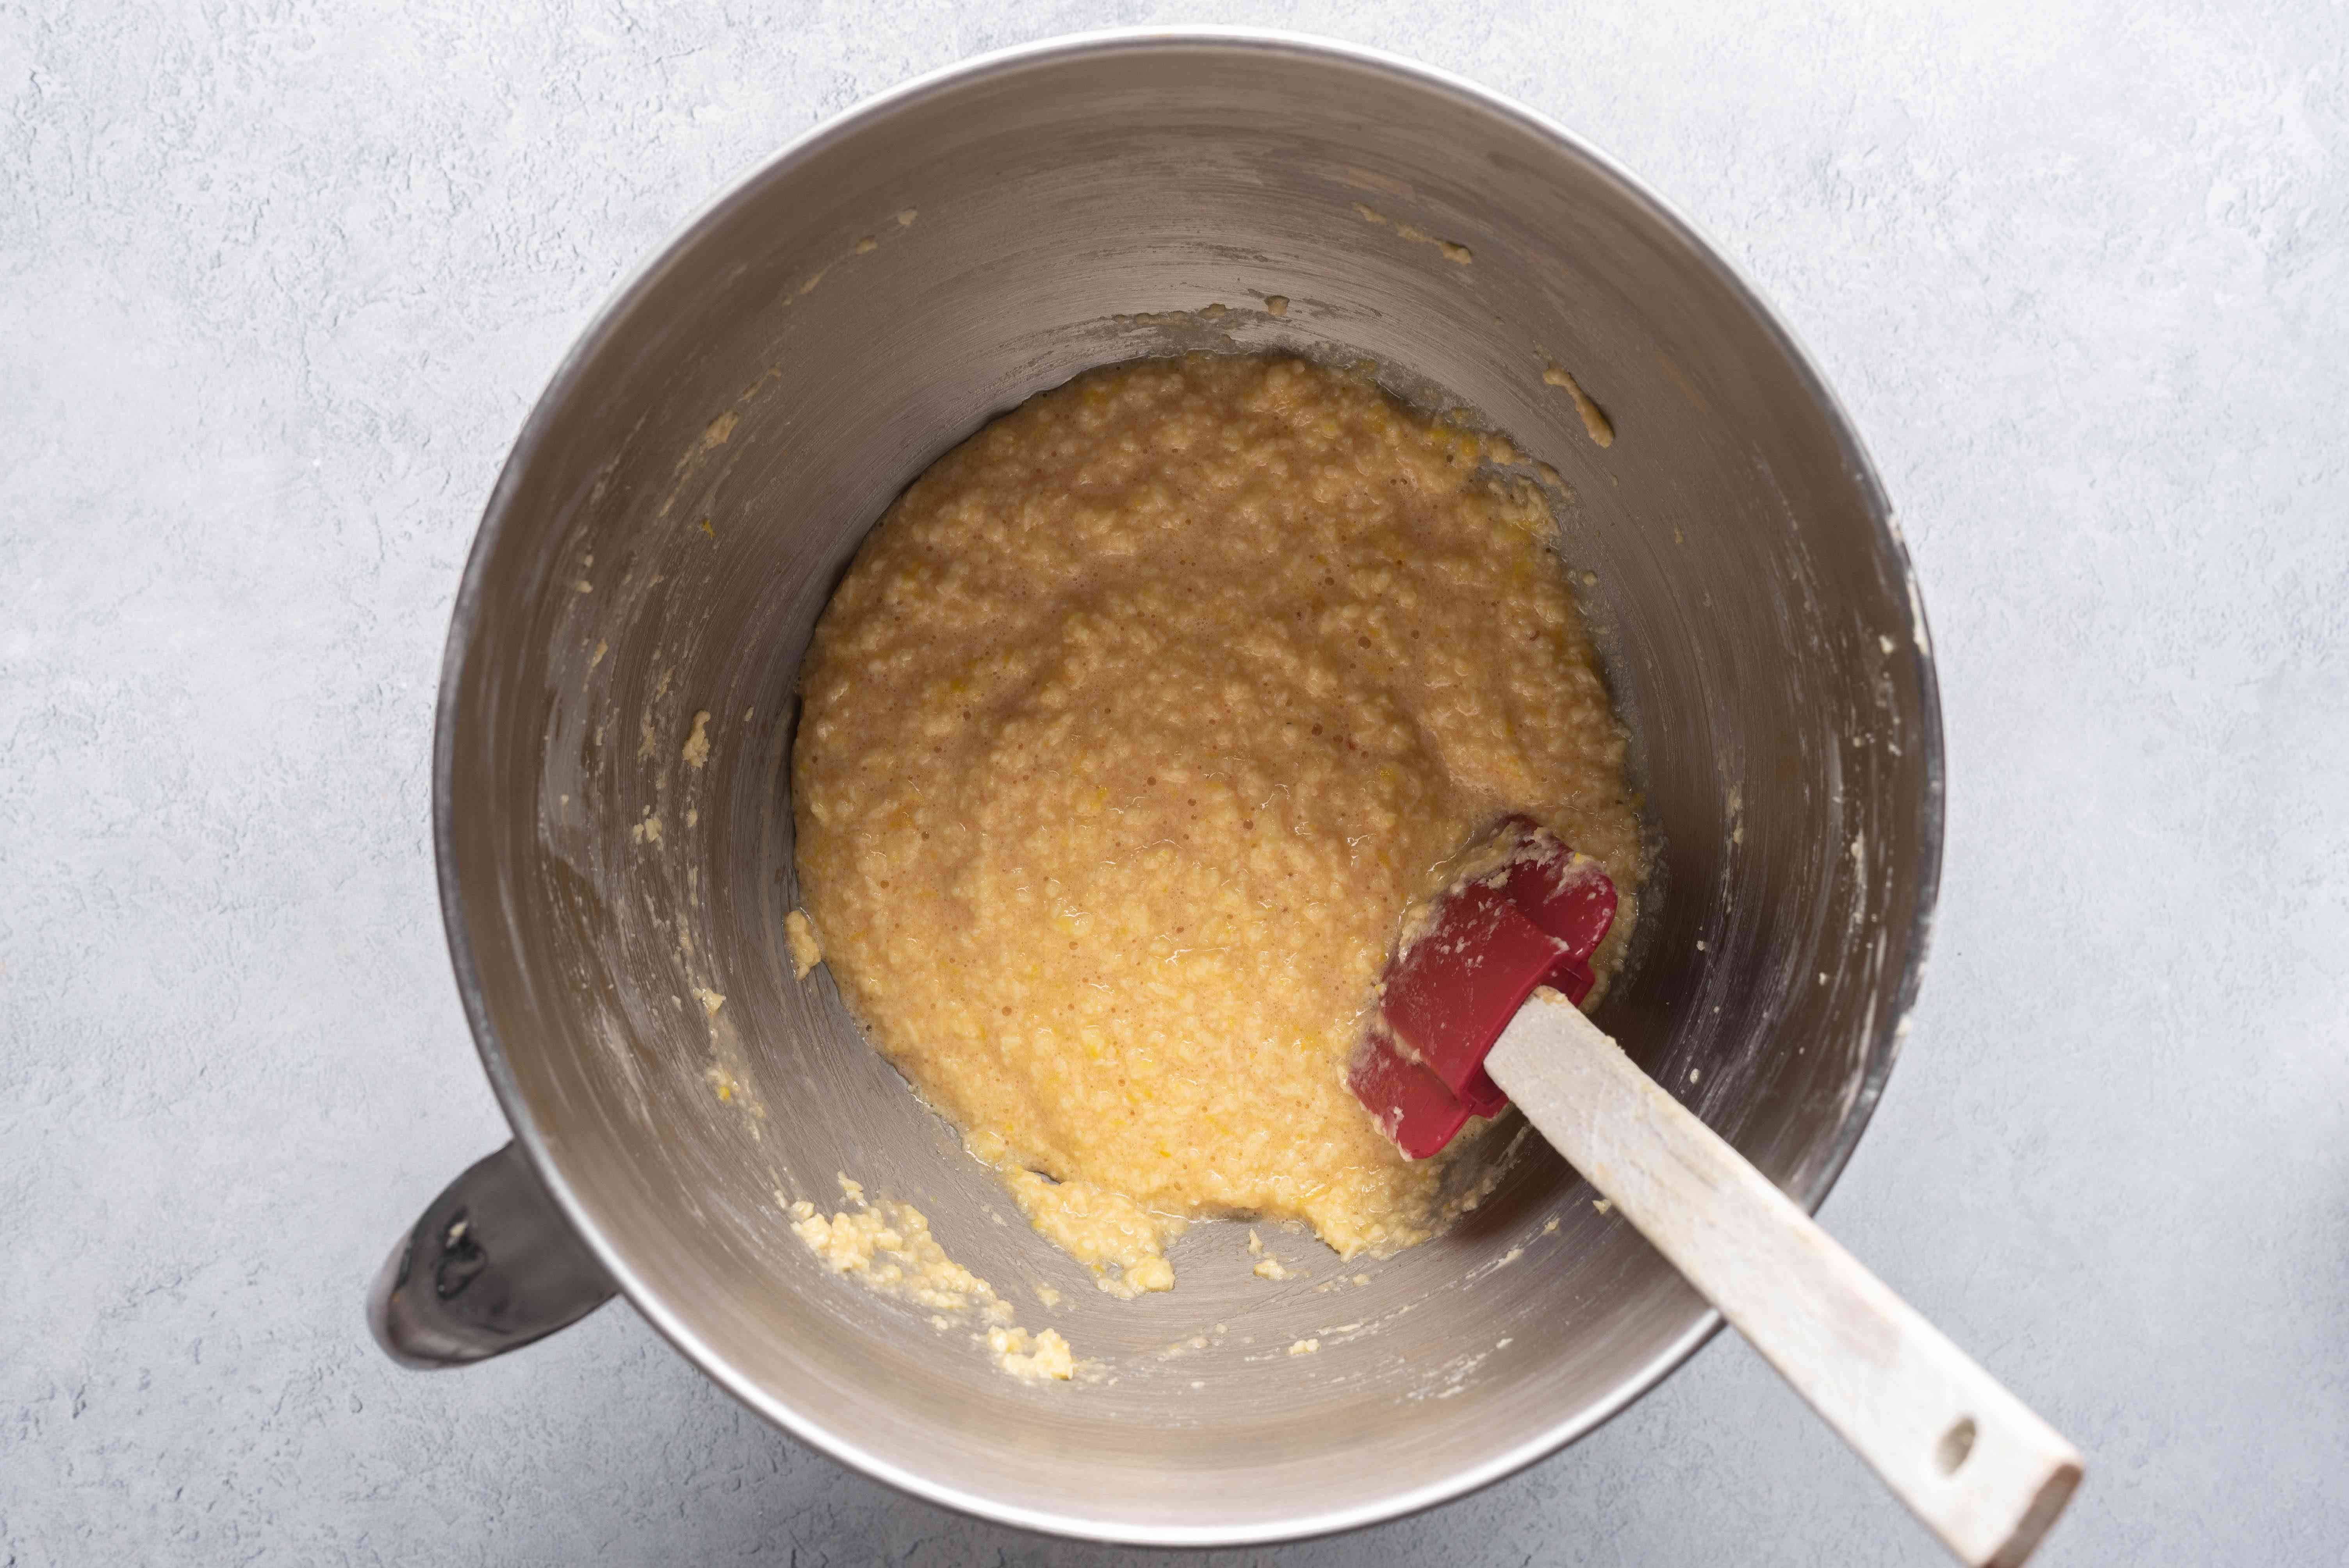 Gently fold the ground almonds, lemon zest, and almond extract into the filling mixture